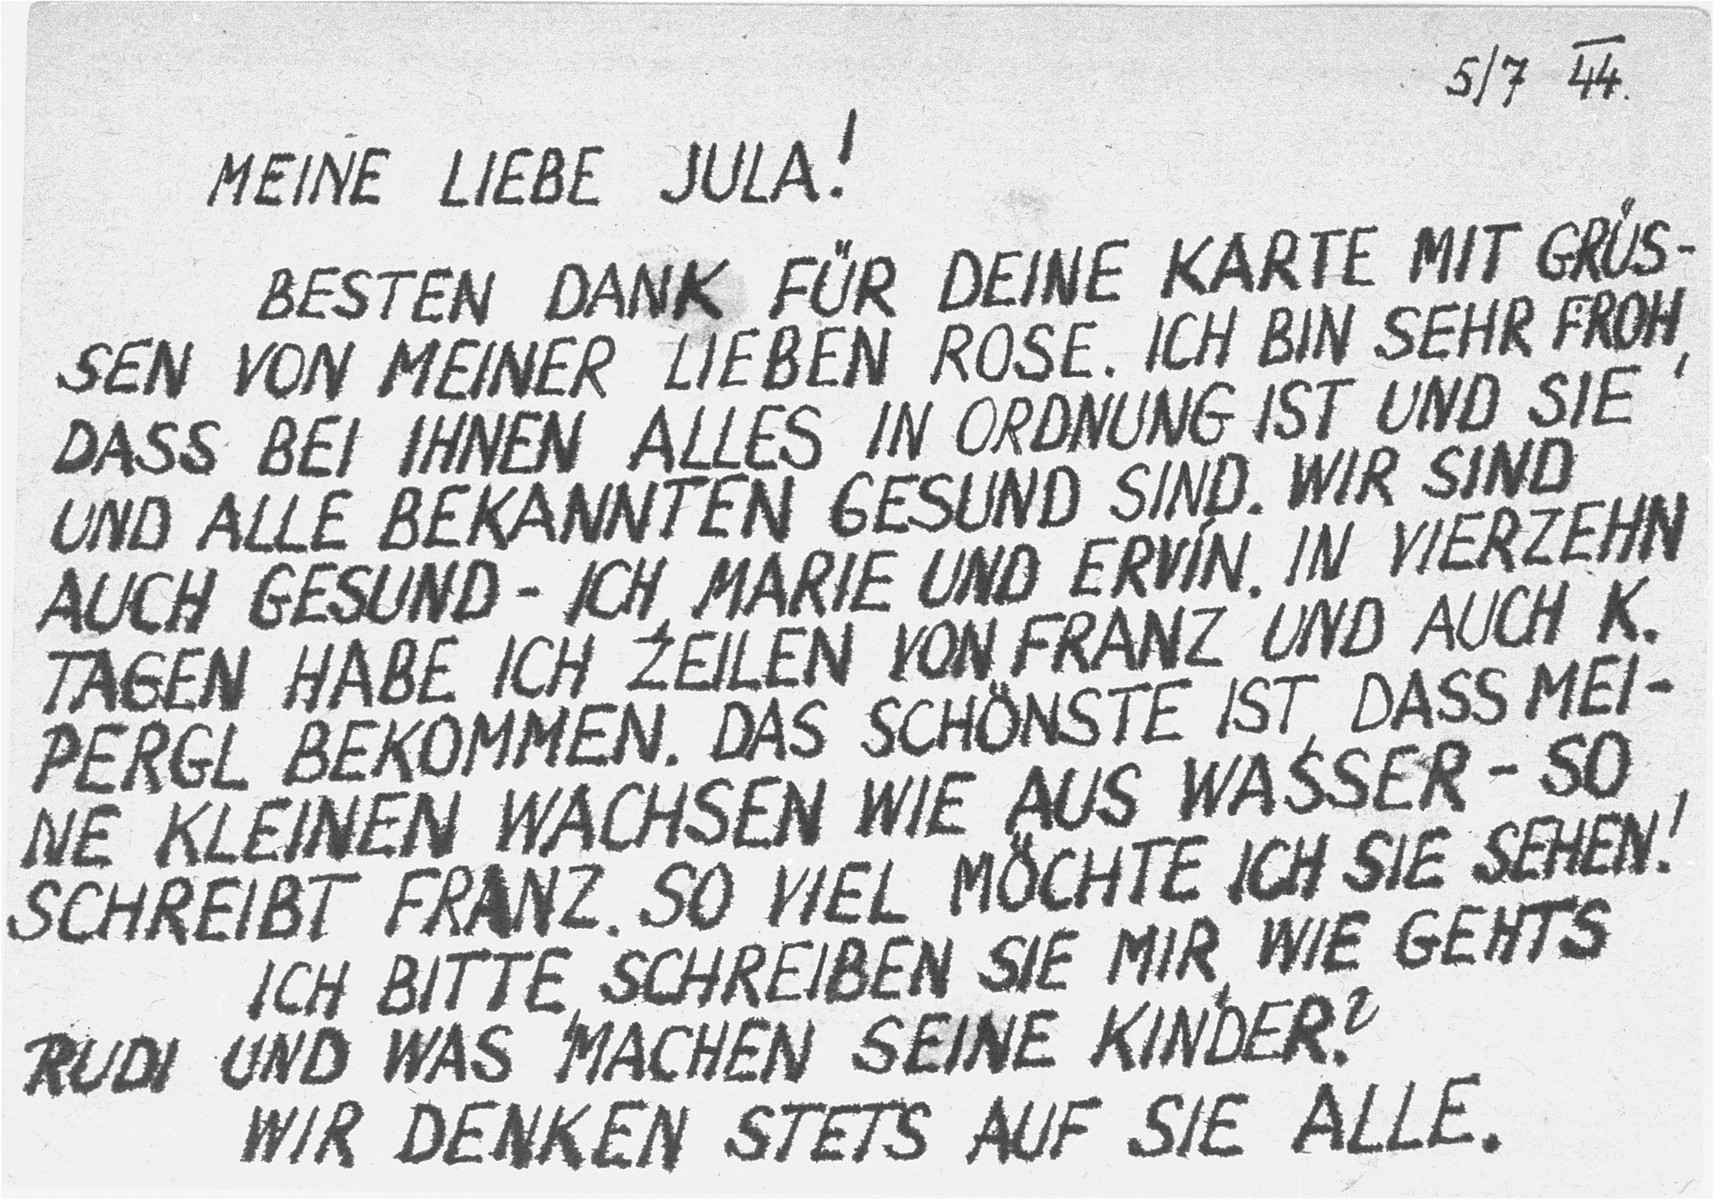 "The back of a postcard sent from Iva Ledec, a German Jewish prisoner in Theresienstadt, to Juliana Behounek.    It reads: ""My Dear Jula!  Many thanks for your card with greetings from my dear Rose.  I am very happy that everything with you is in order and that all of you are healthy.  We are also well - I, Marie, and Ervin. In the past two weeks, I also received some lines from Franz and also K. Pergl.  Franz wrote me the best news - my little ones are growing like crazy.  I would like to see them so much! Please write and tell me about Rudi and his children?  We think often of you all."""